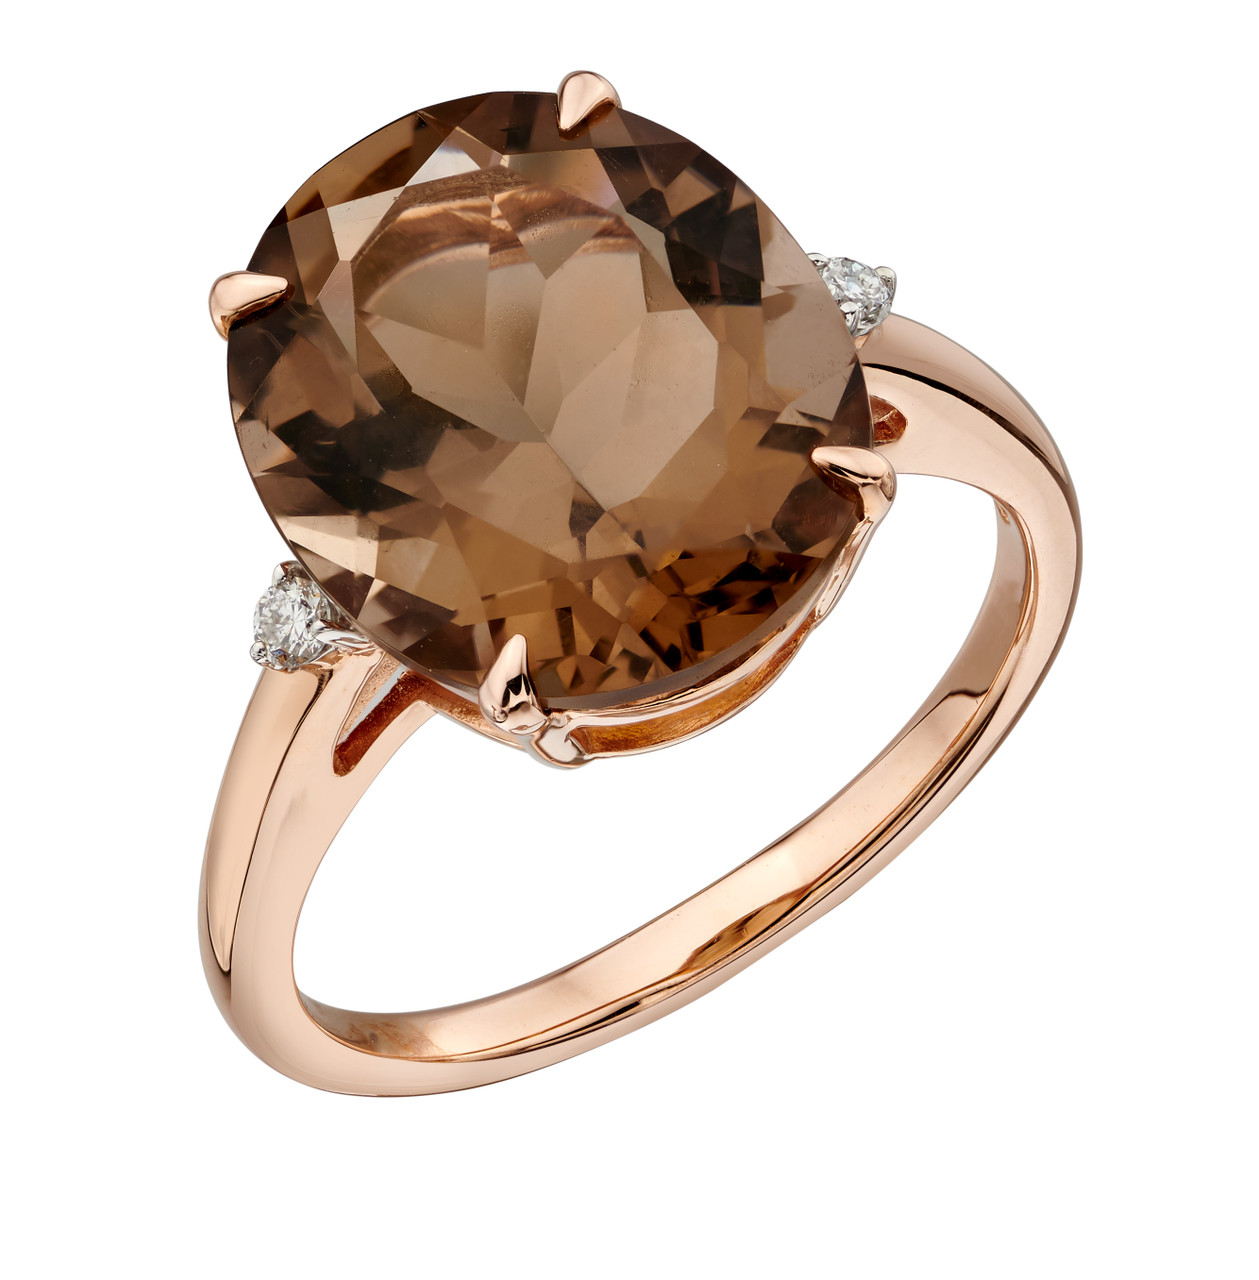 9ct Rose Gold Smoky Quartz & Diamond Ring